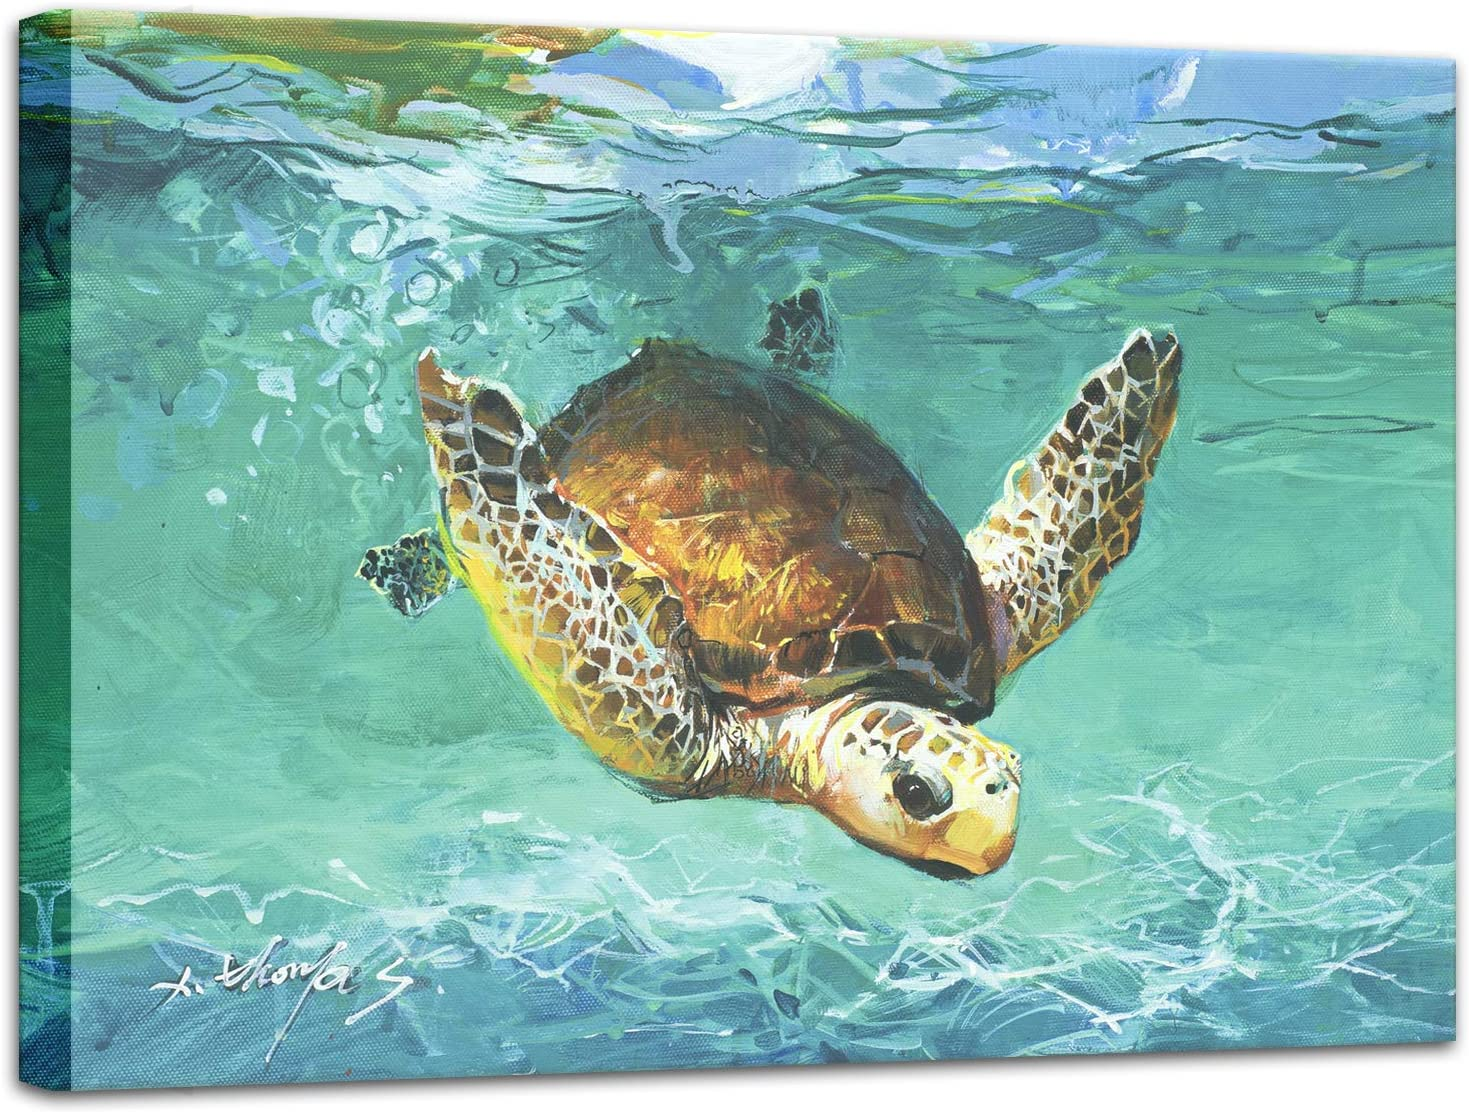 Beach Theme Bathroom Decor, 12x16 inch Sea Turtle Pictures Wall Art, Nautical Ocean Wall Decor Canvas Painting Prints, Gallery Wrapped Stretched